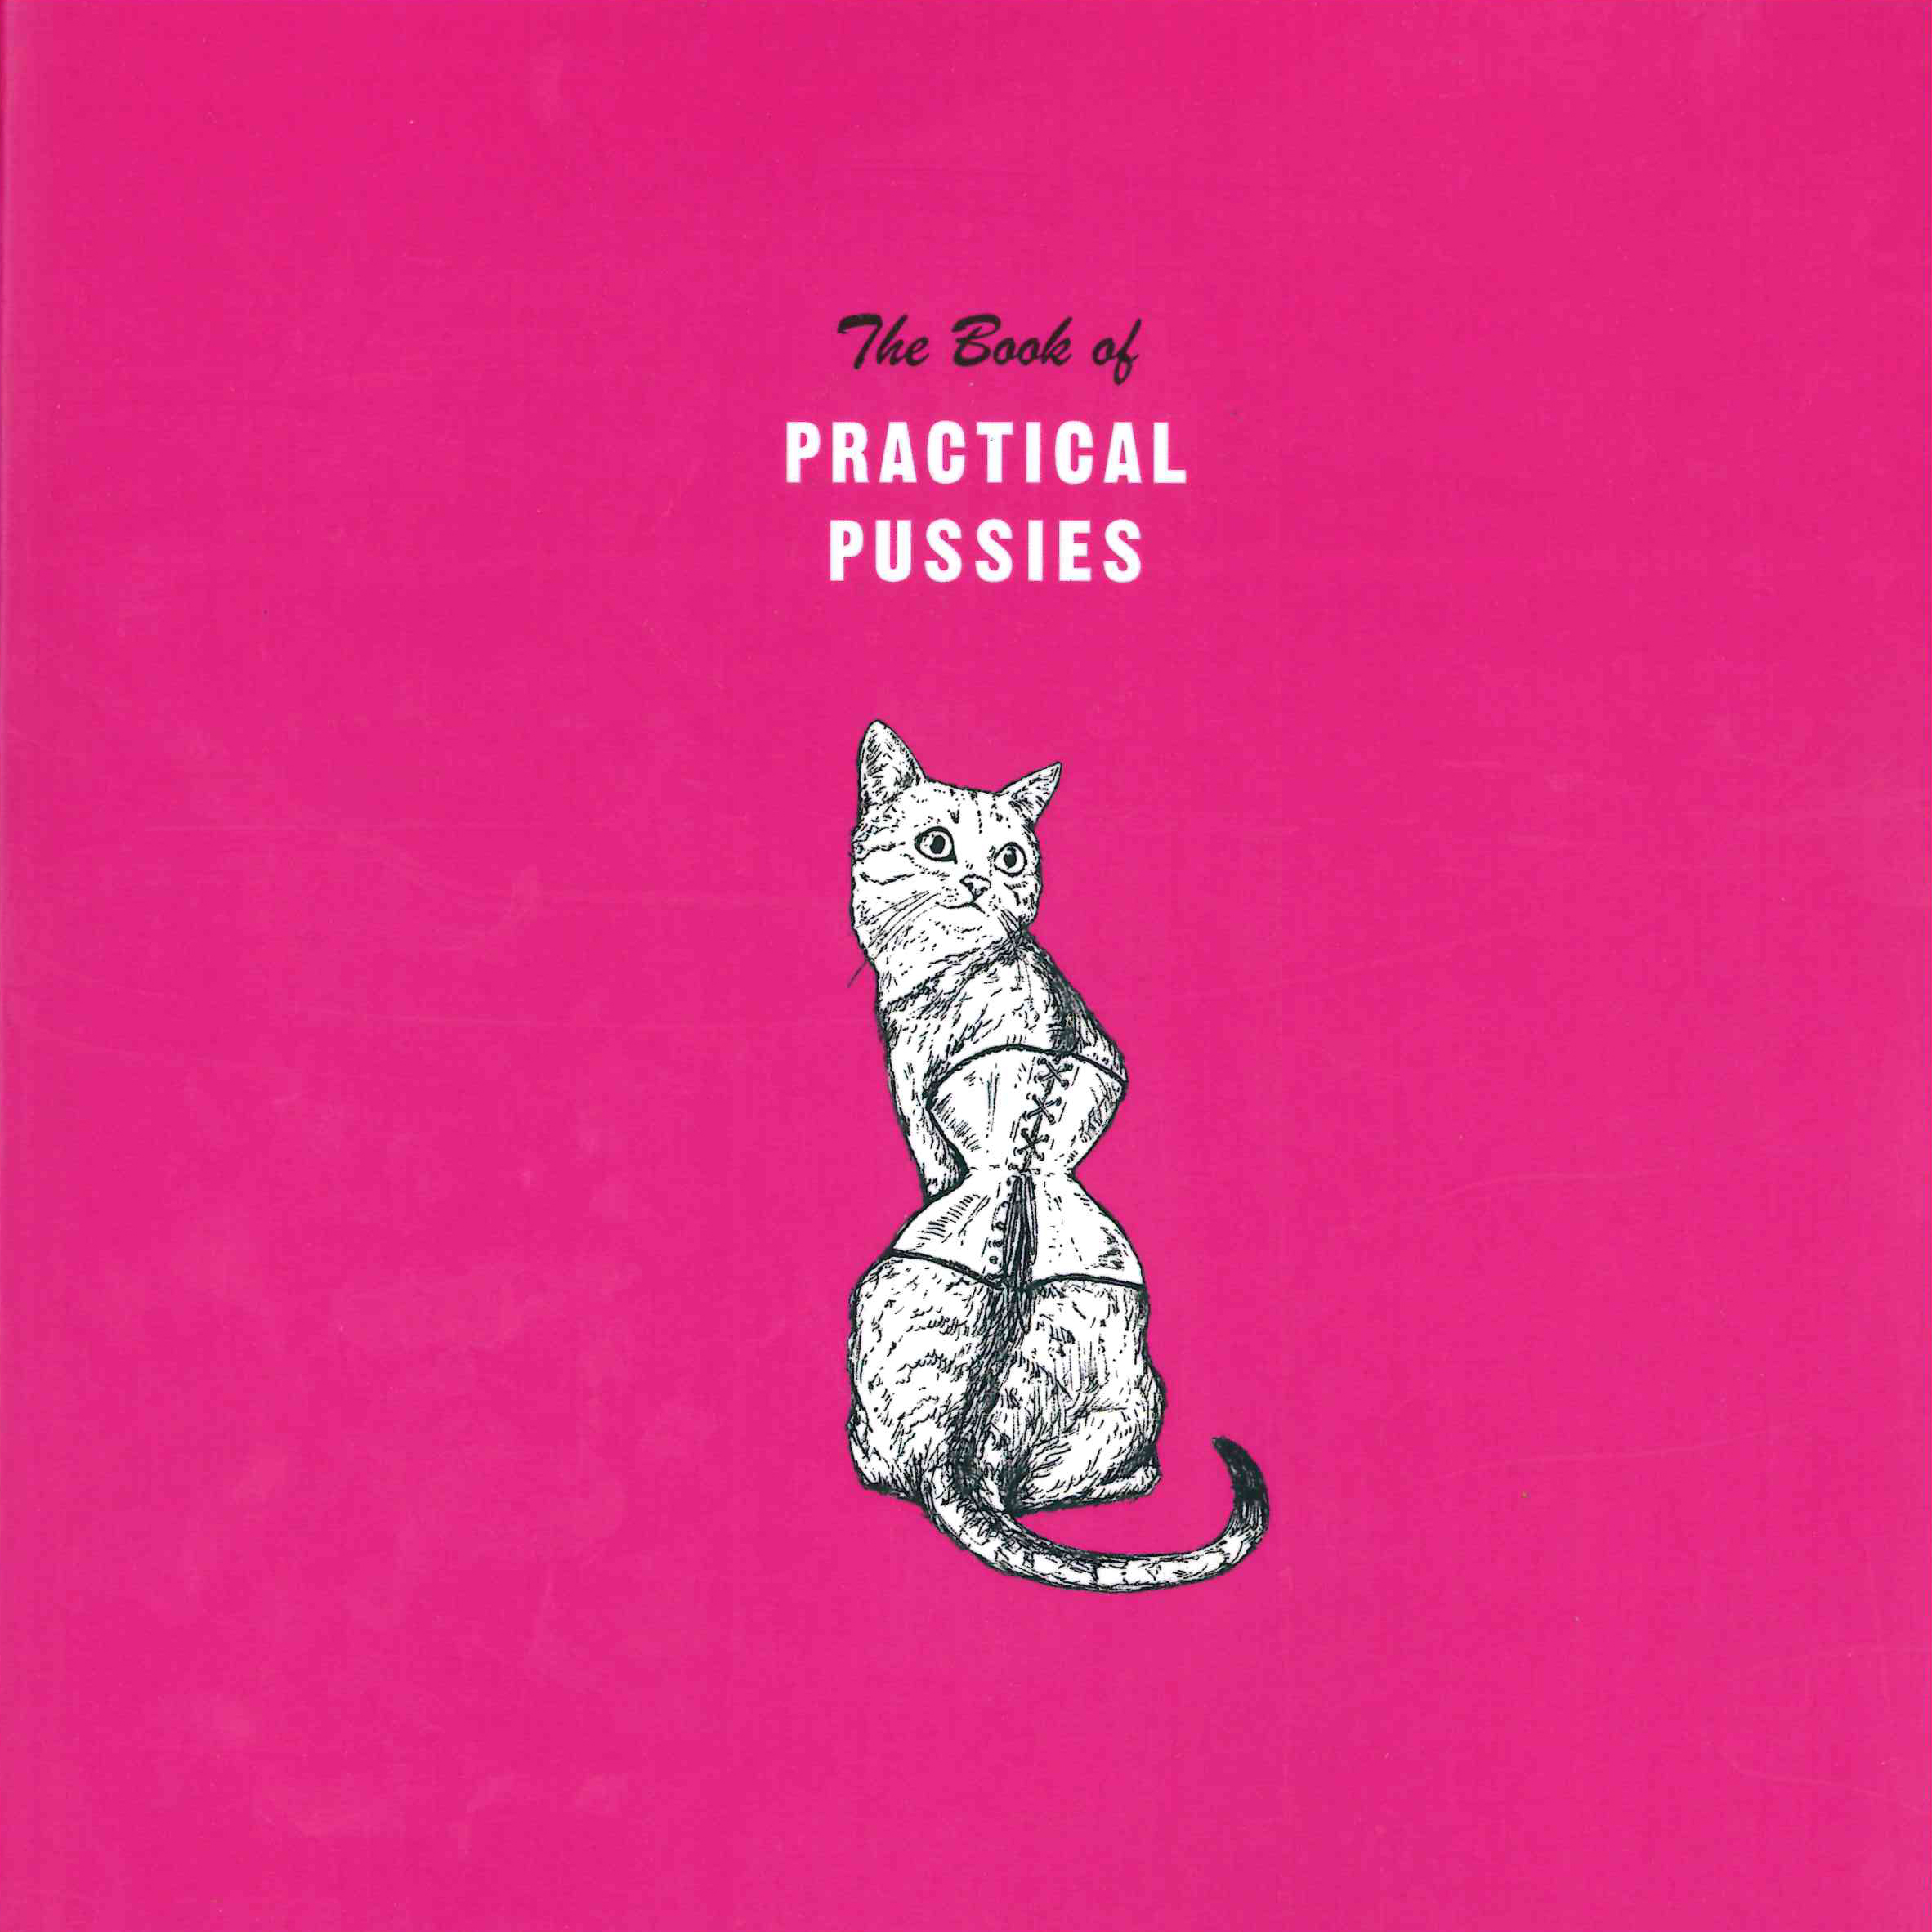 The Book of Practical Pussies